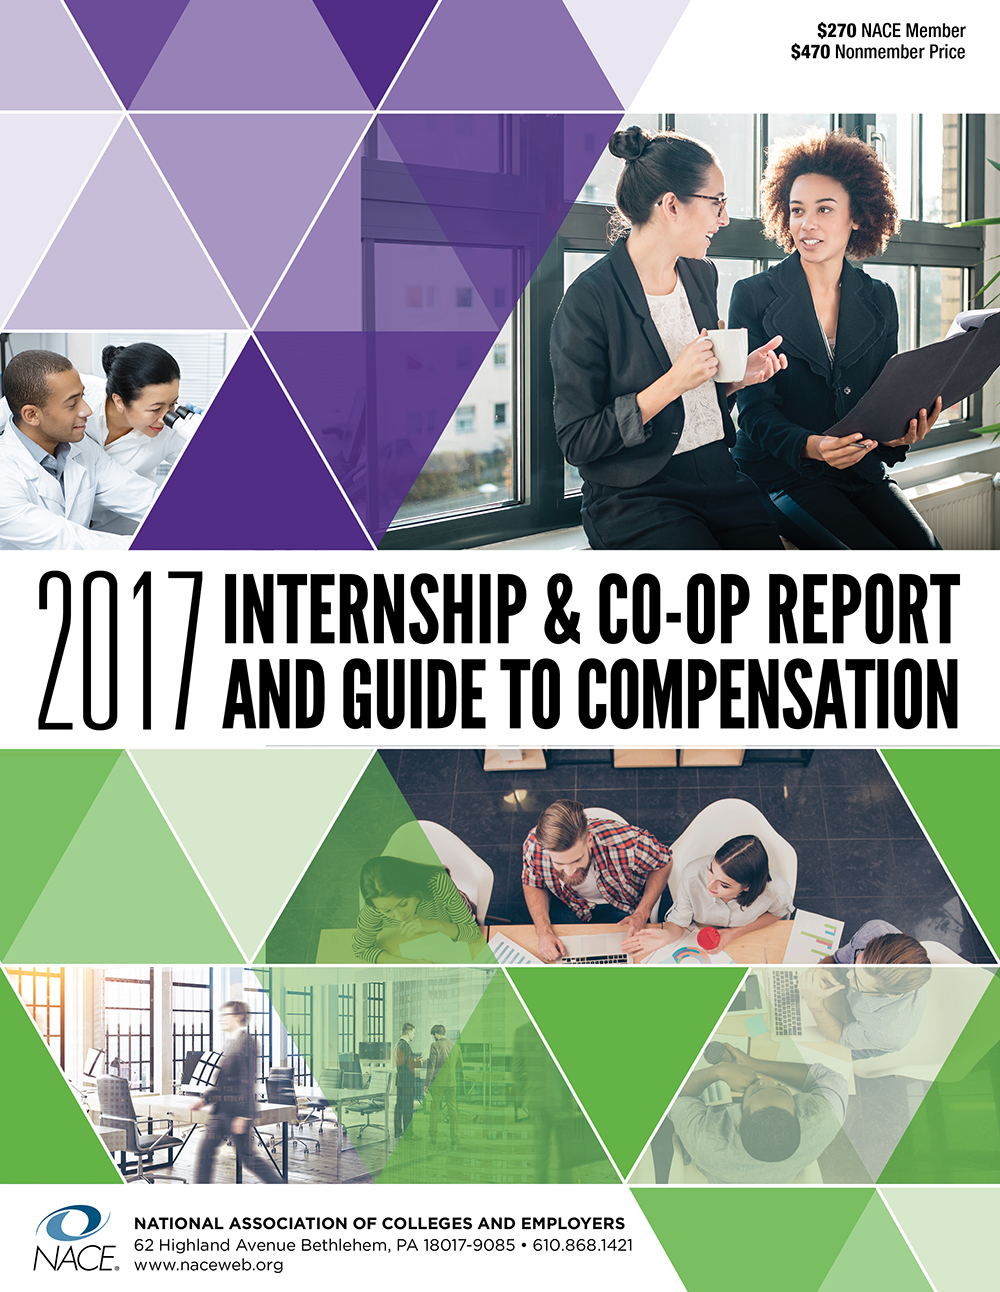 Internship Survey & Compensation Guide Combo 2017